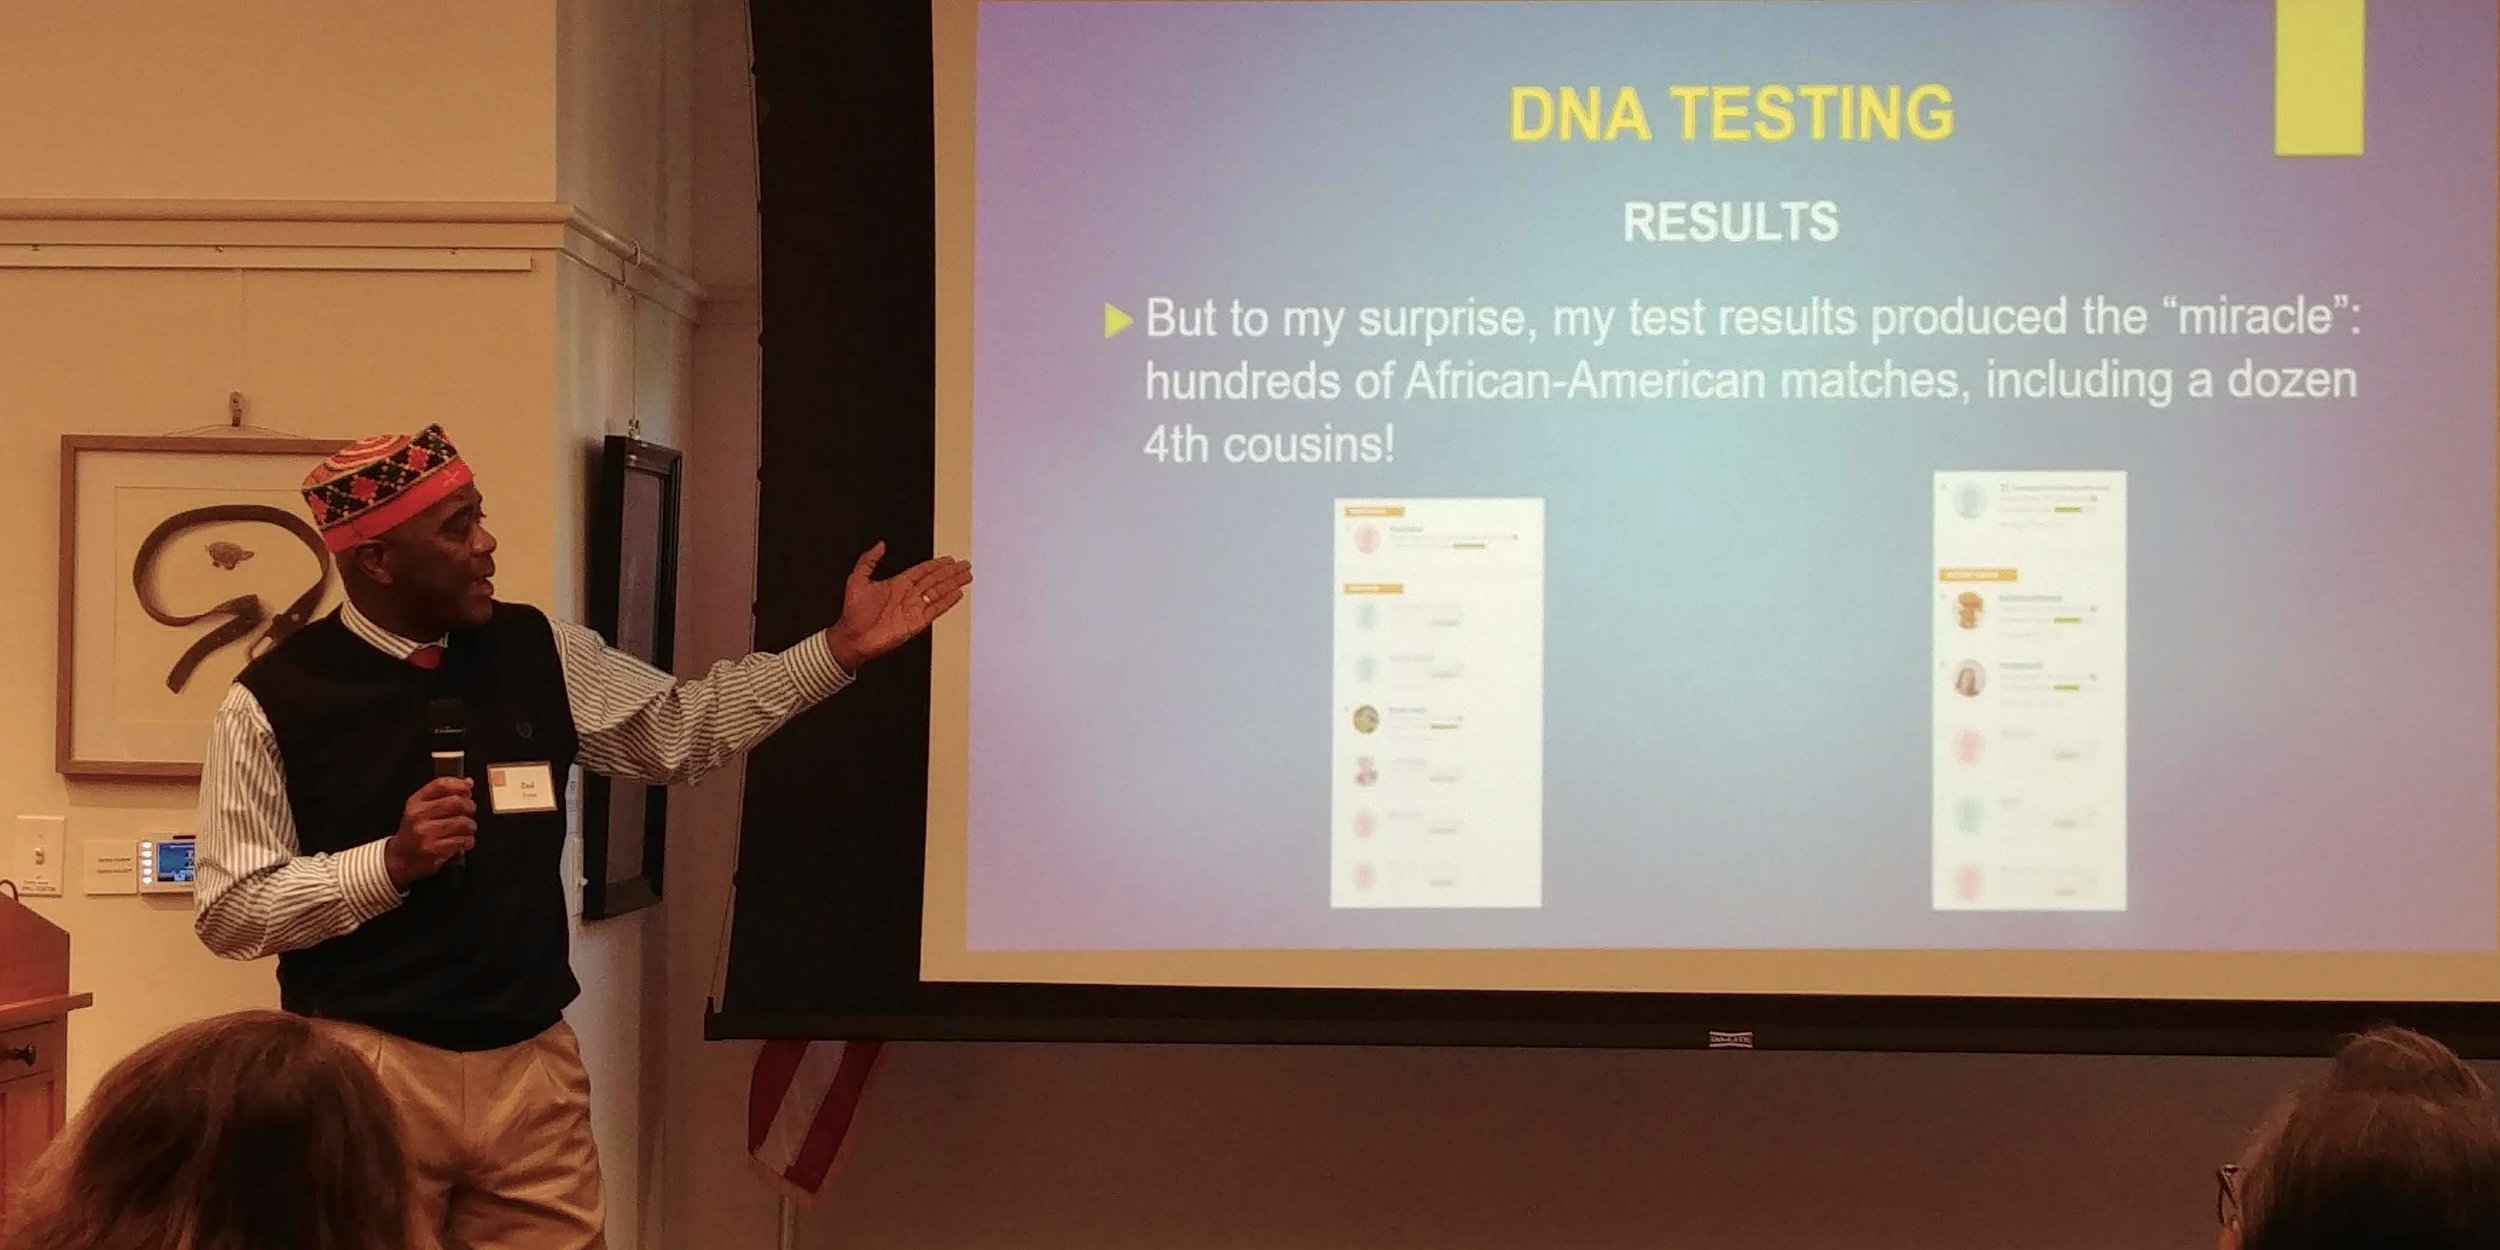 Finding Family - Finding Family: A Story of Slavery, Separation and Reunification recounts the story of a recent African immigrant to the United States who makes the unexpected discovery through DNA that he has hundreds of African American relatives, and embarks with several of them on a journey of hope and reunification to identify their common ancestor.